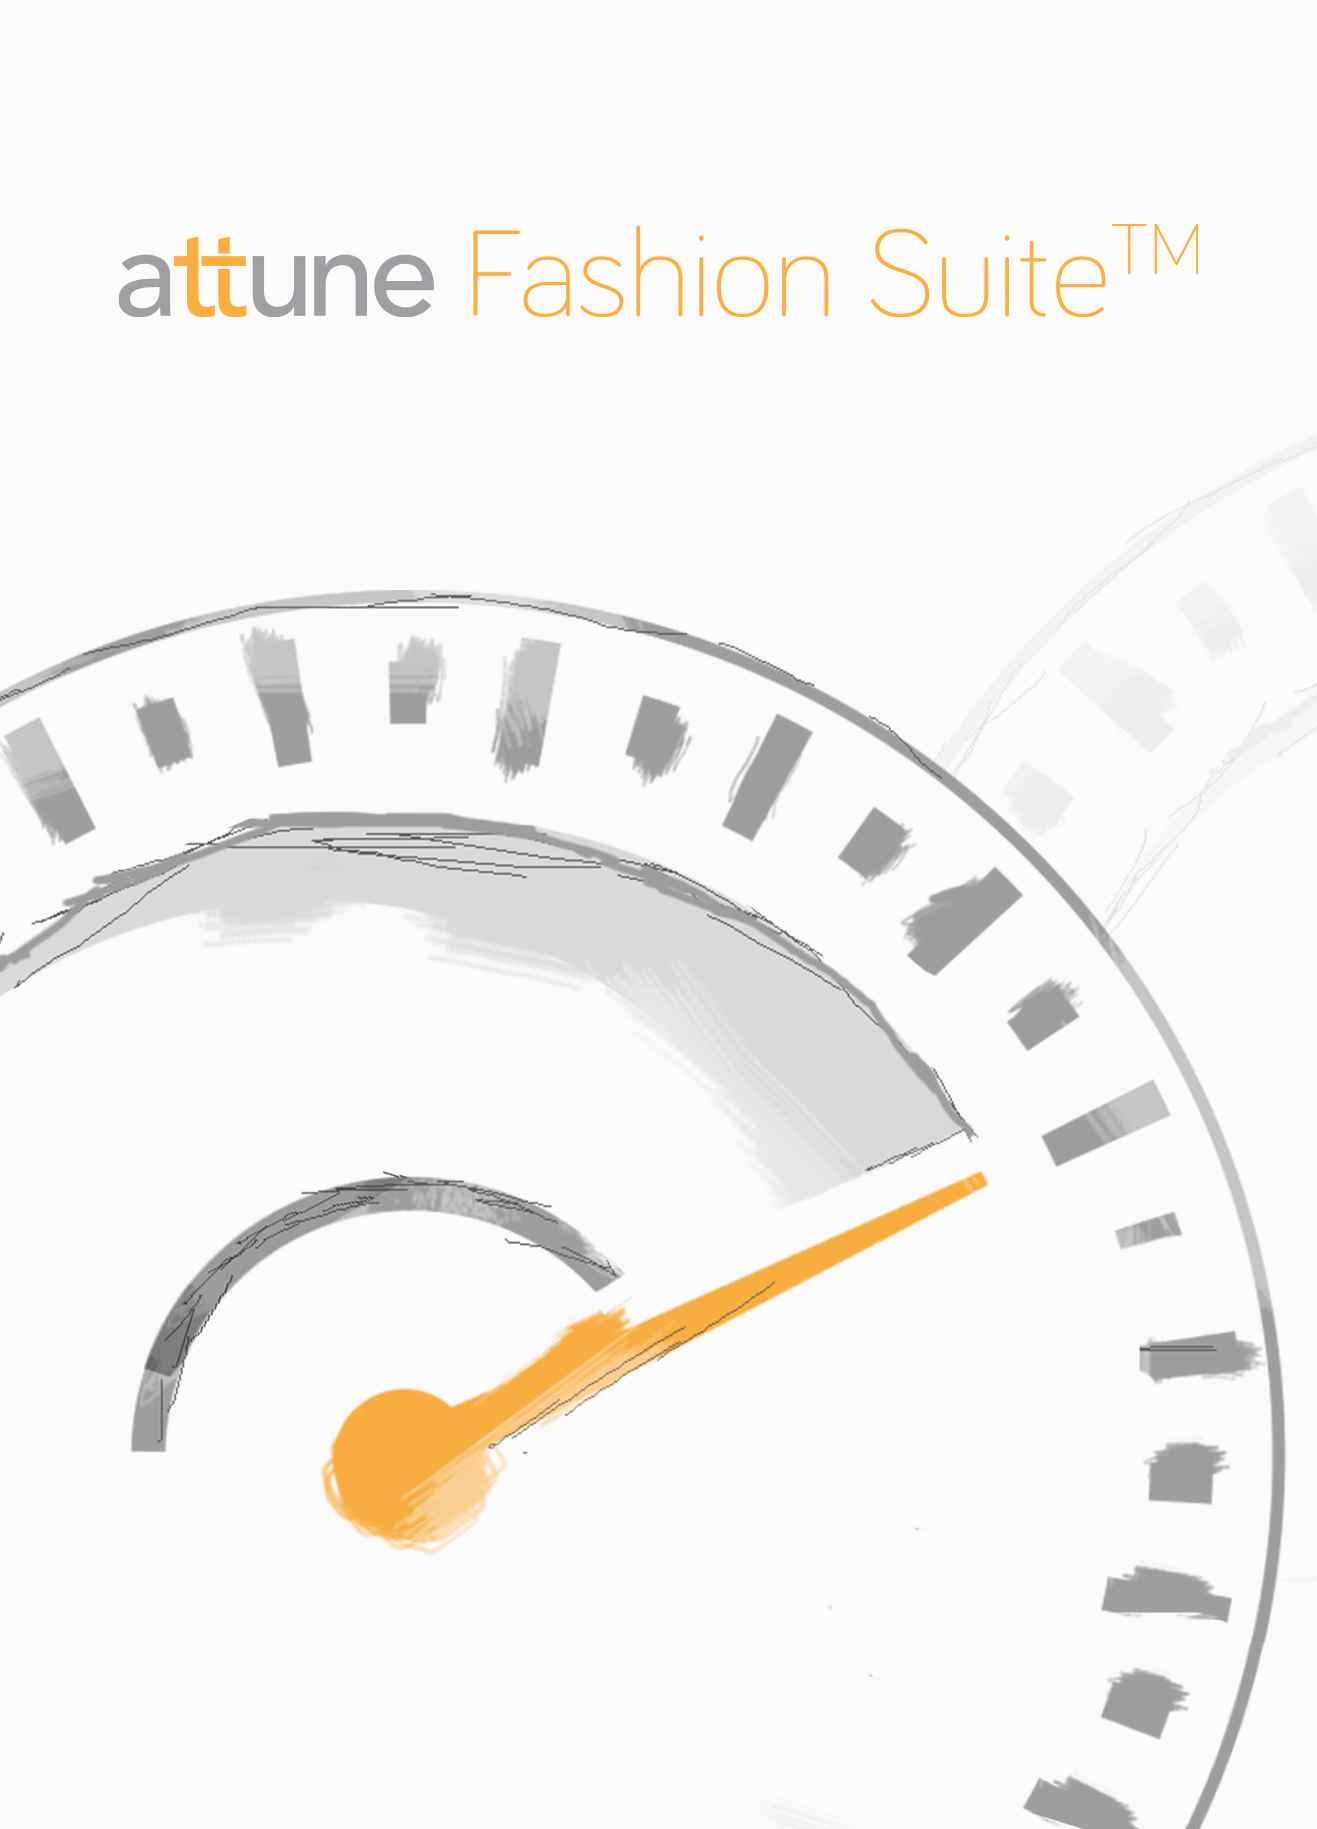 Migrate to S/4HANA faster with attune fashion suite